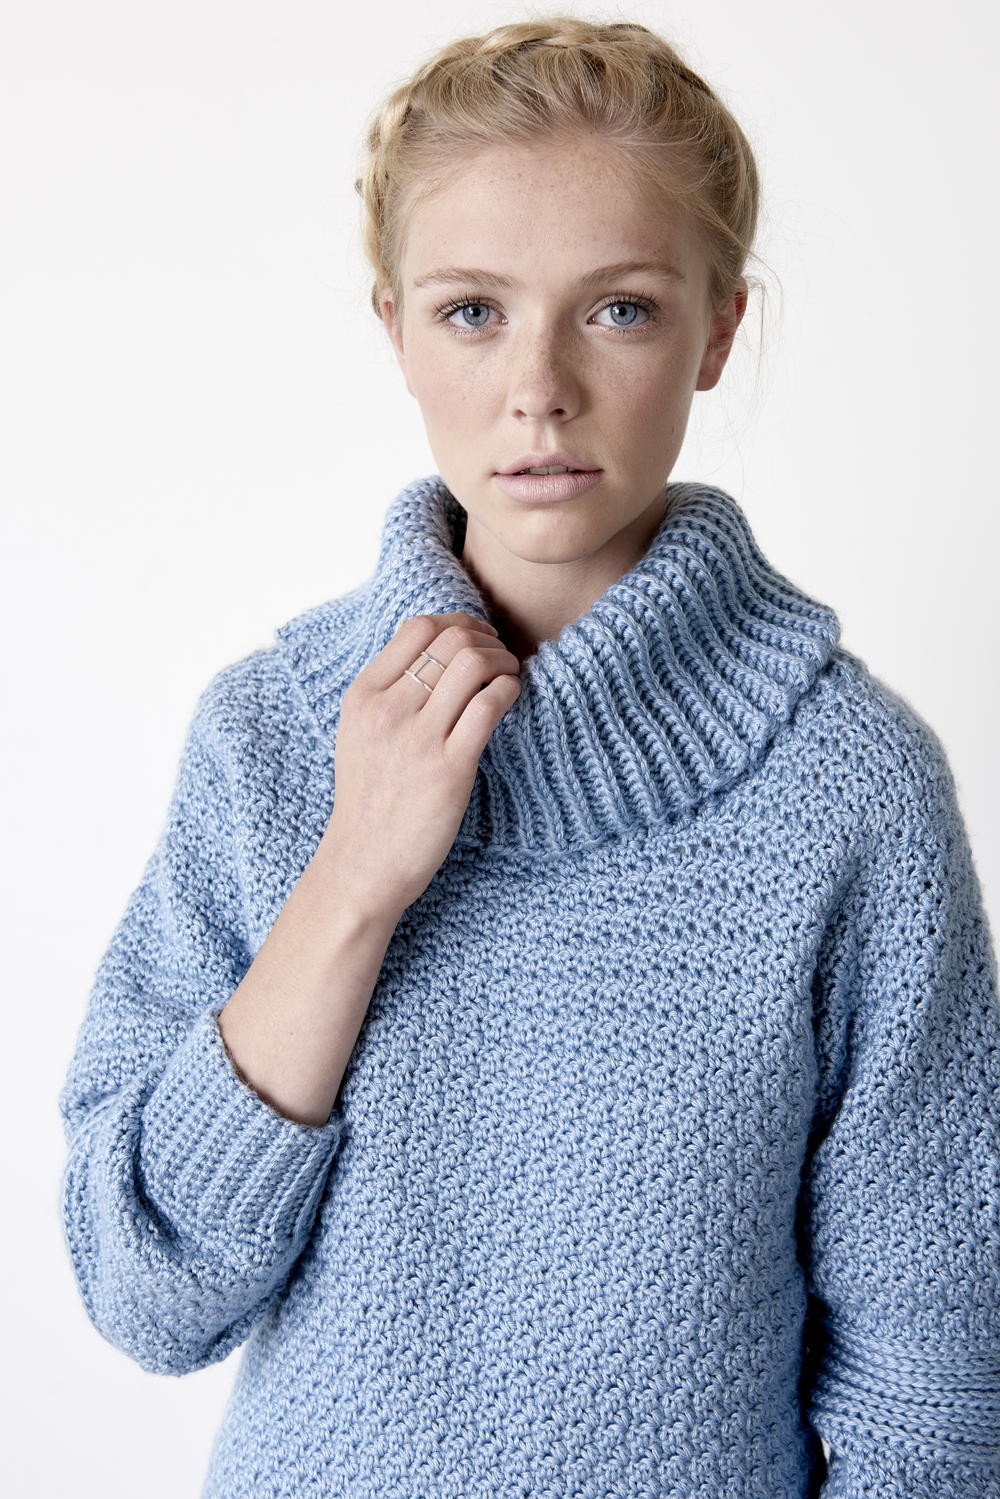 Elegant Over Easy Cowl Neck Pullover Sweaters Crochet Patterns Of Luxury 45 Images Sweaters Crochet Patterns